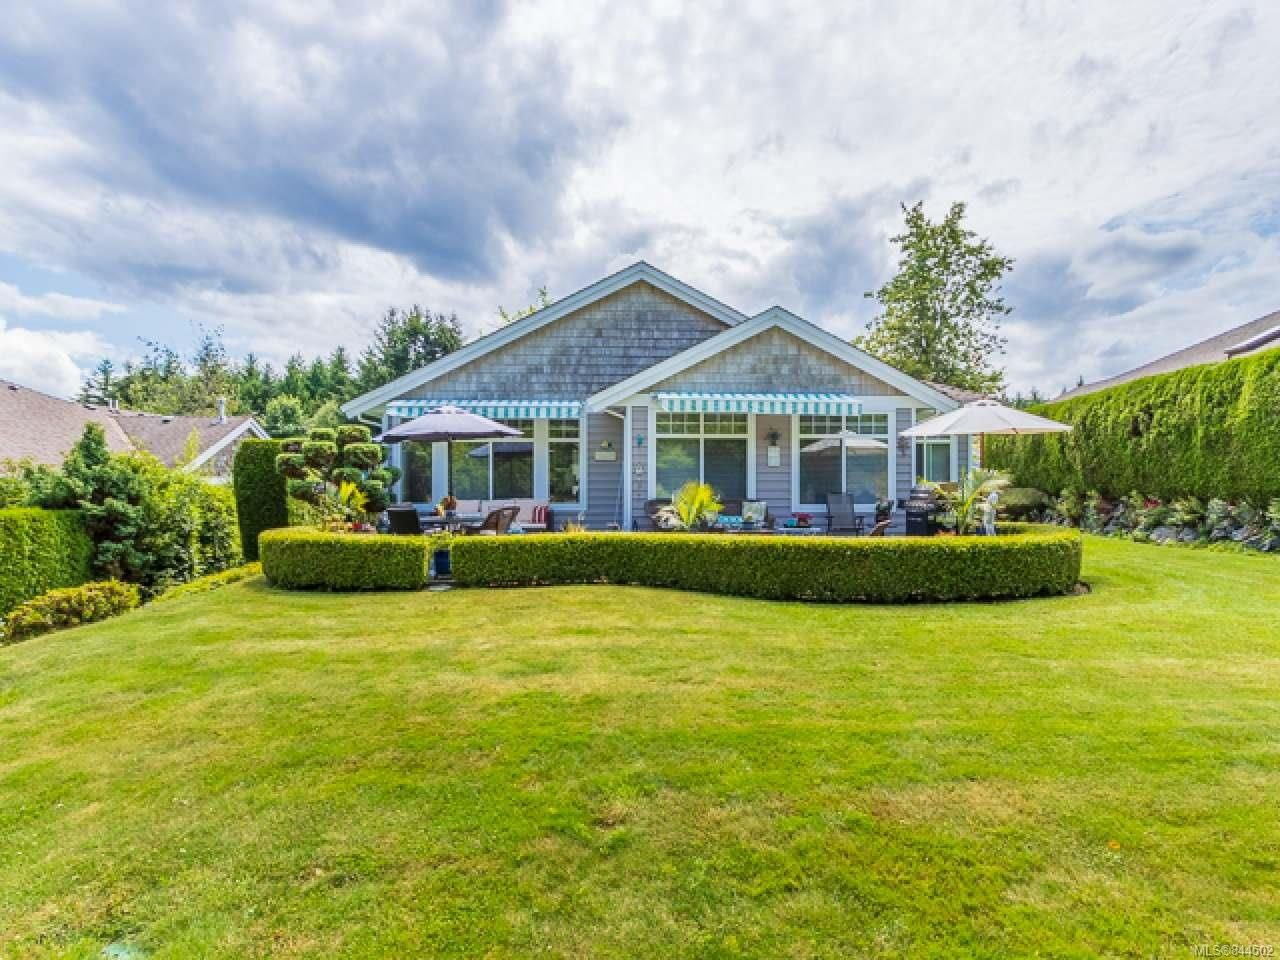 Main Photo: 1213 Saturna Dr in PARKSVILLE: PQ Parksville Row/Townhouse for sale (Parksville/Qualicum)  : MLS®# 844502